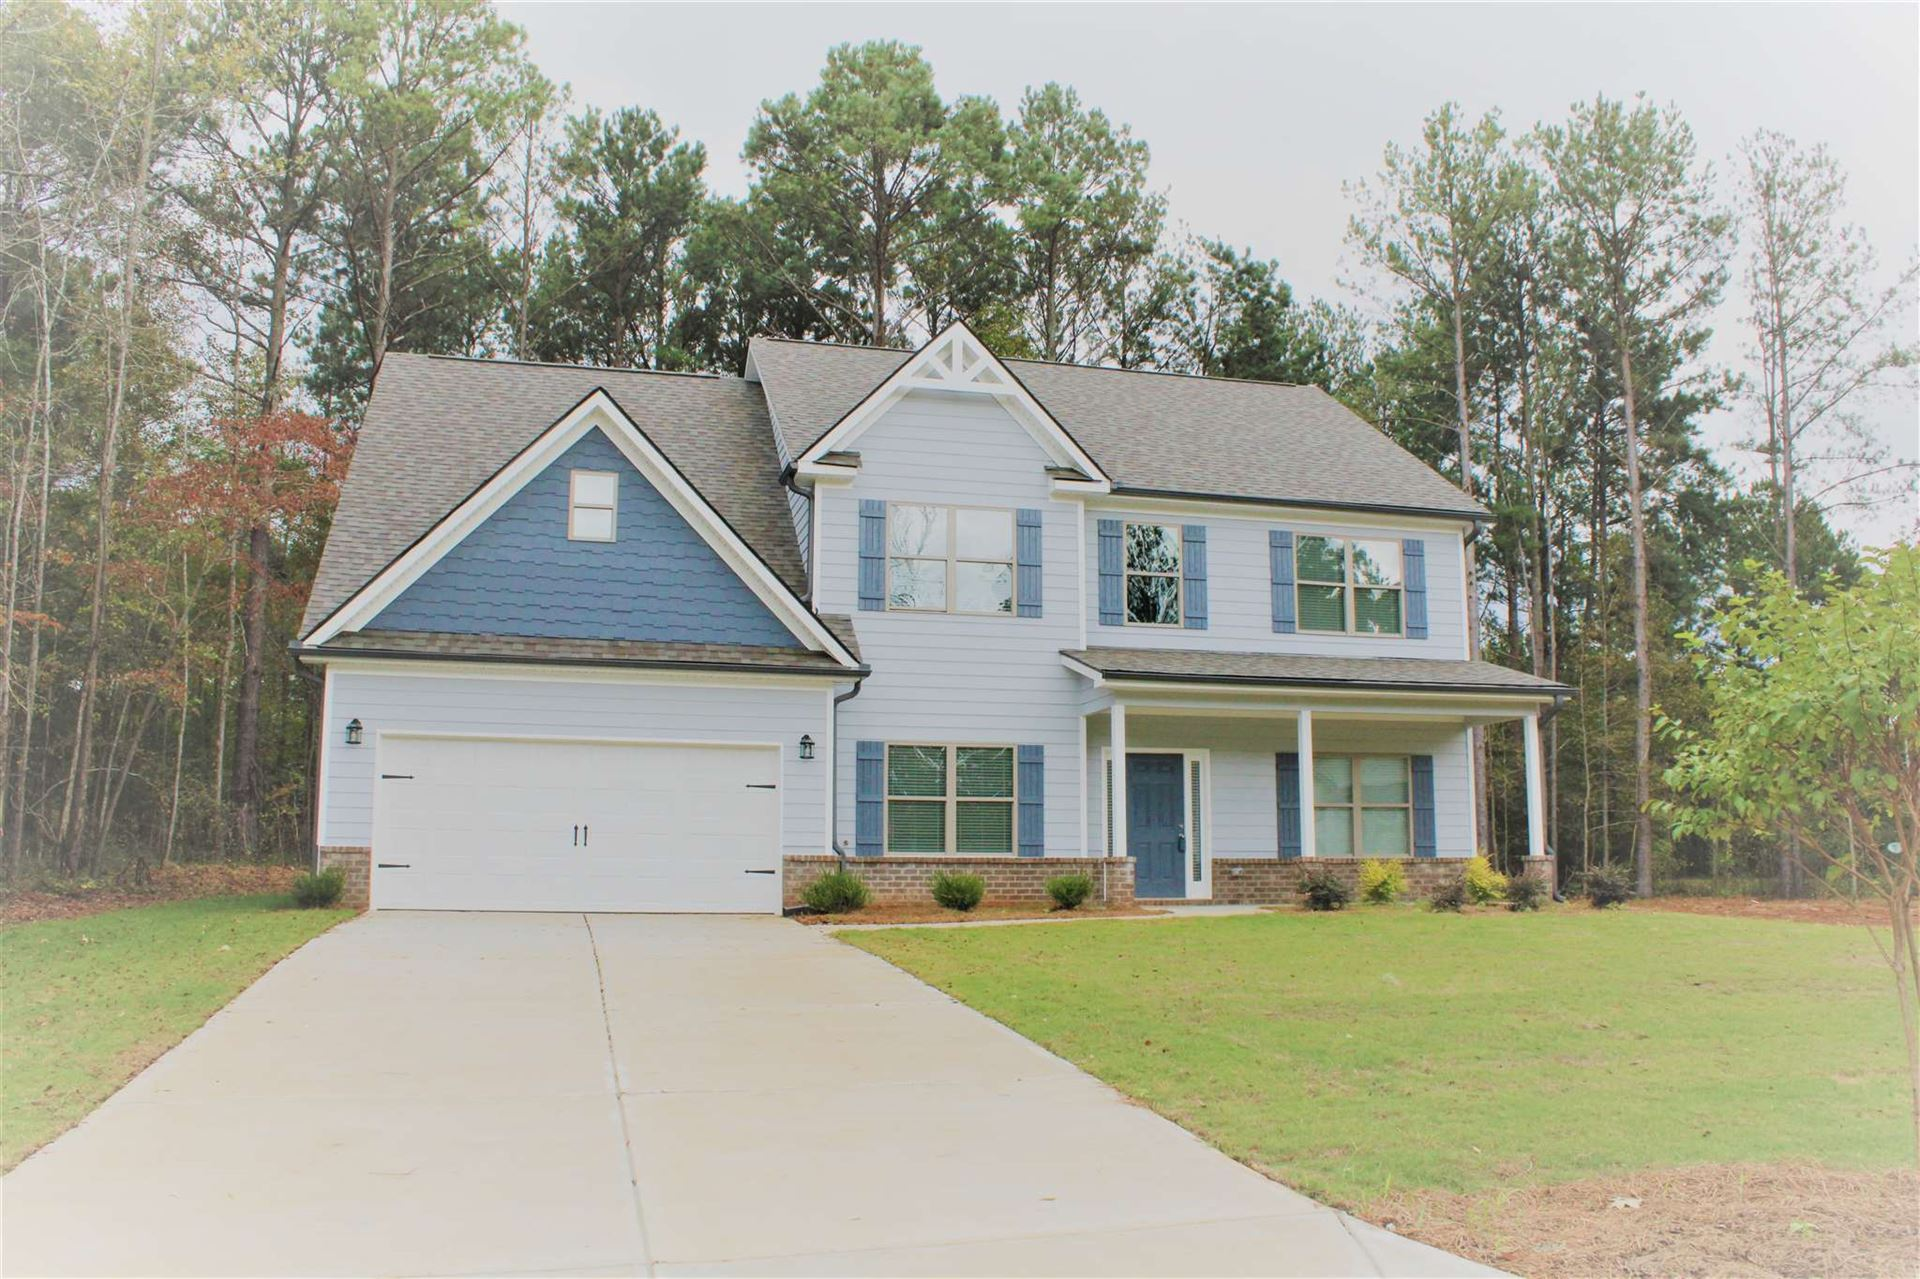 75 Edward Way, Covington, GA 30016 - #: 8764892